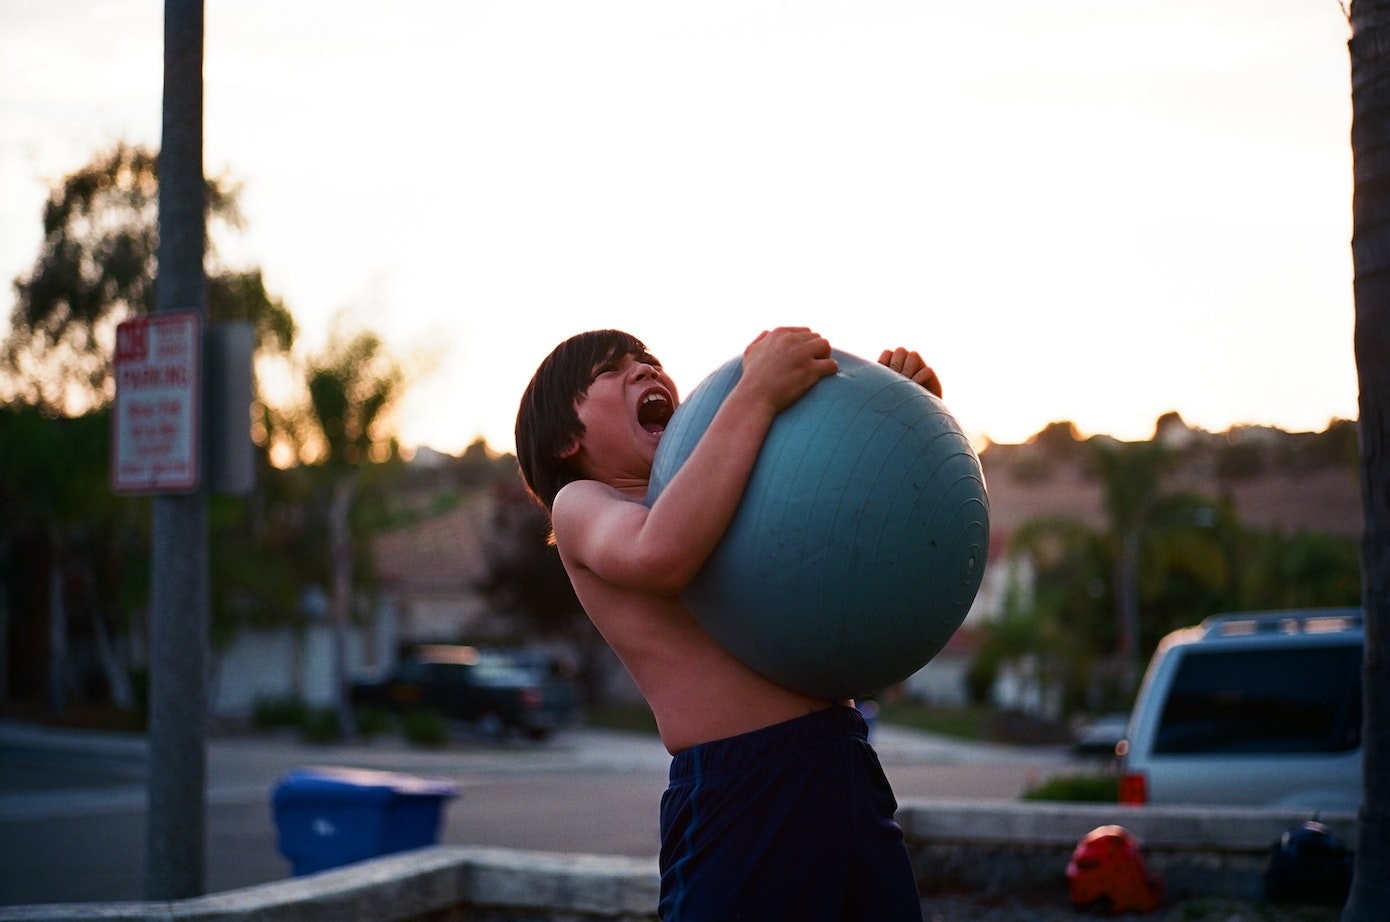 A boy grimacing while carrying a blue medicine ball